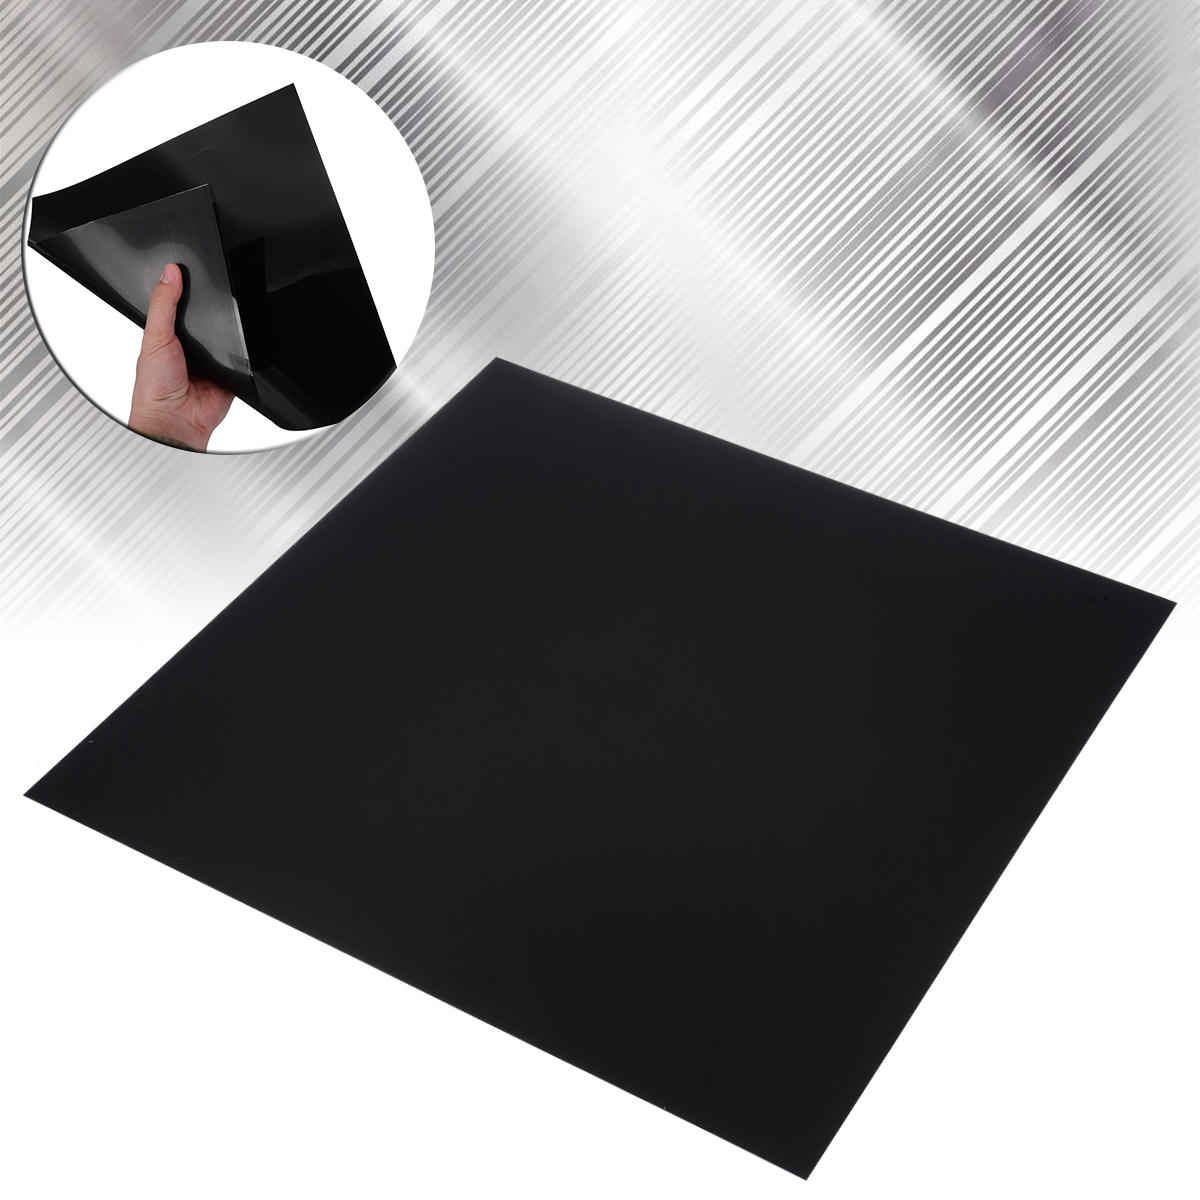 New Industry ABS Plastic Sheet 300*300*0.5mm Black DIY Plastic Flat Board Flexible Smooth Back Sheet For Car Styling Audio